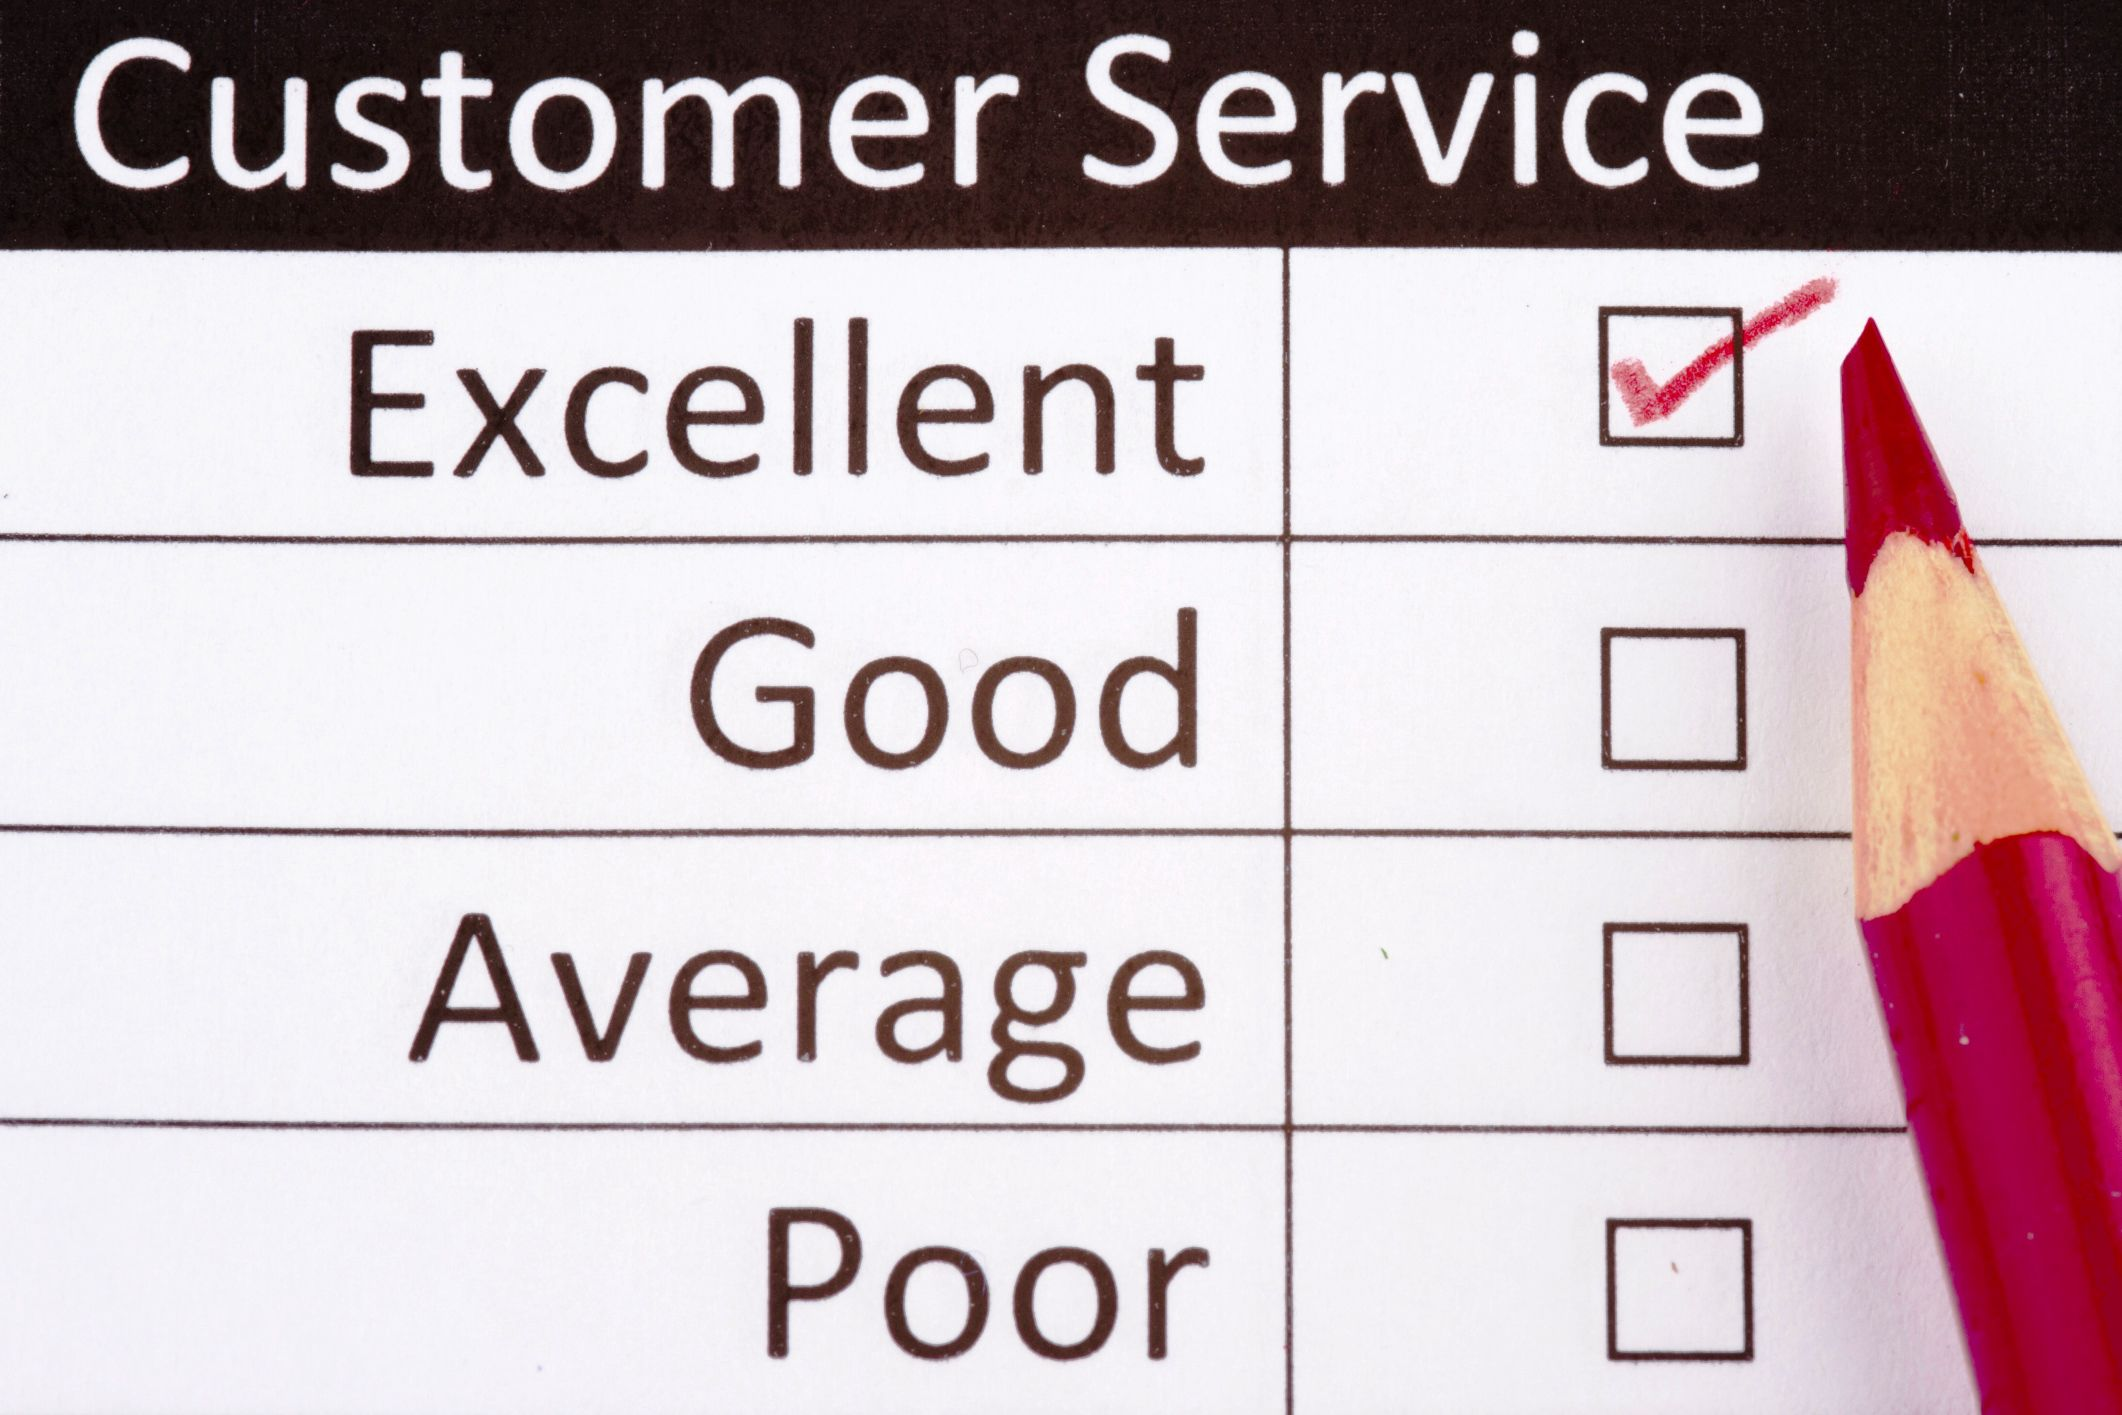 Writing about excellent customer service